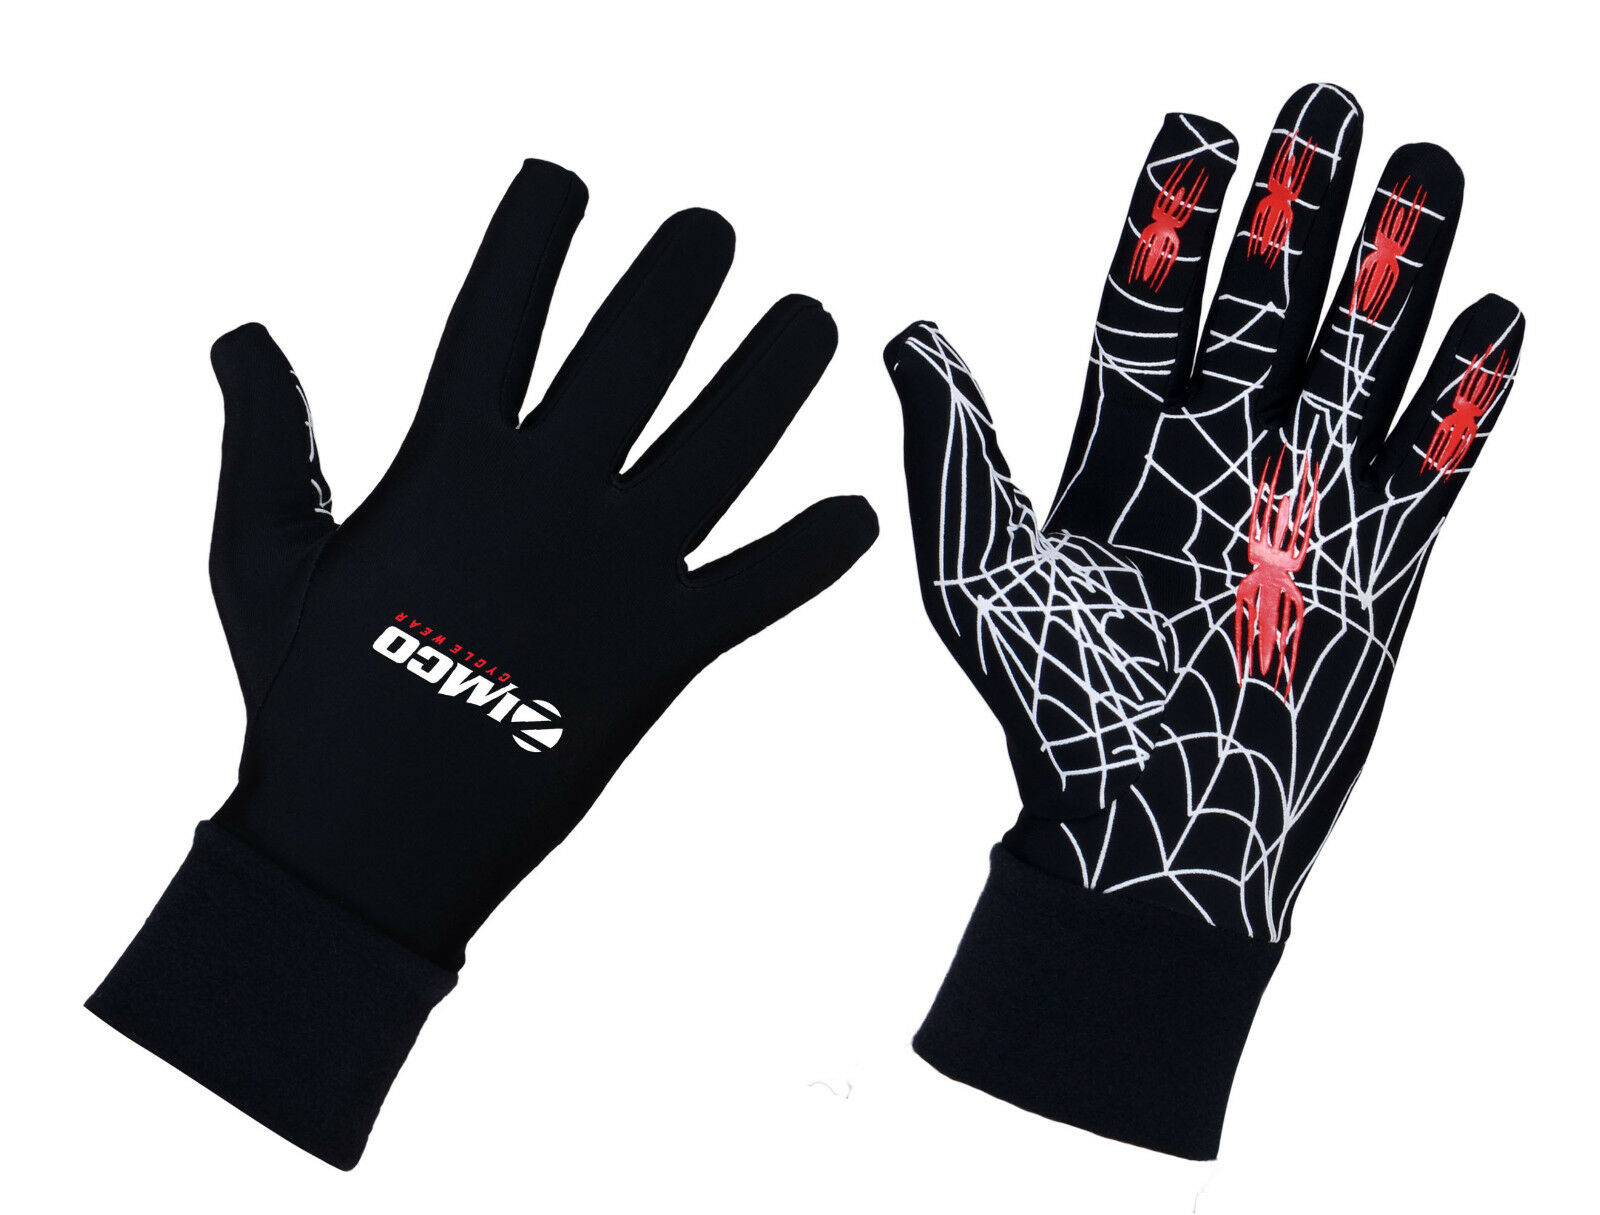 Zimco Winter Cycling Windproof Gel Gloves Thermal Insulated Bike Running